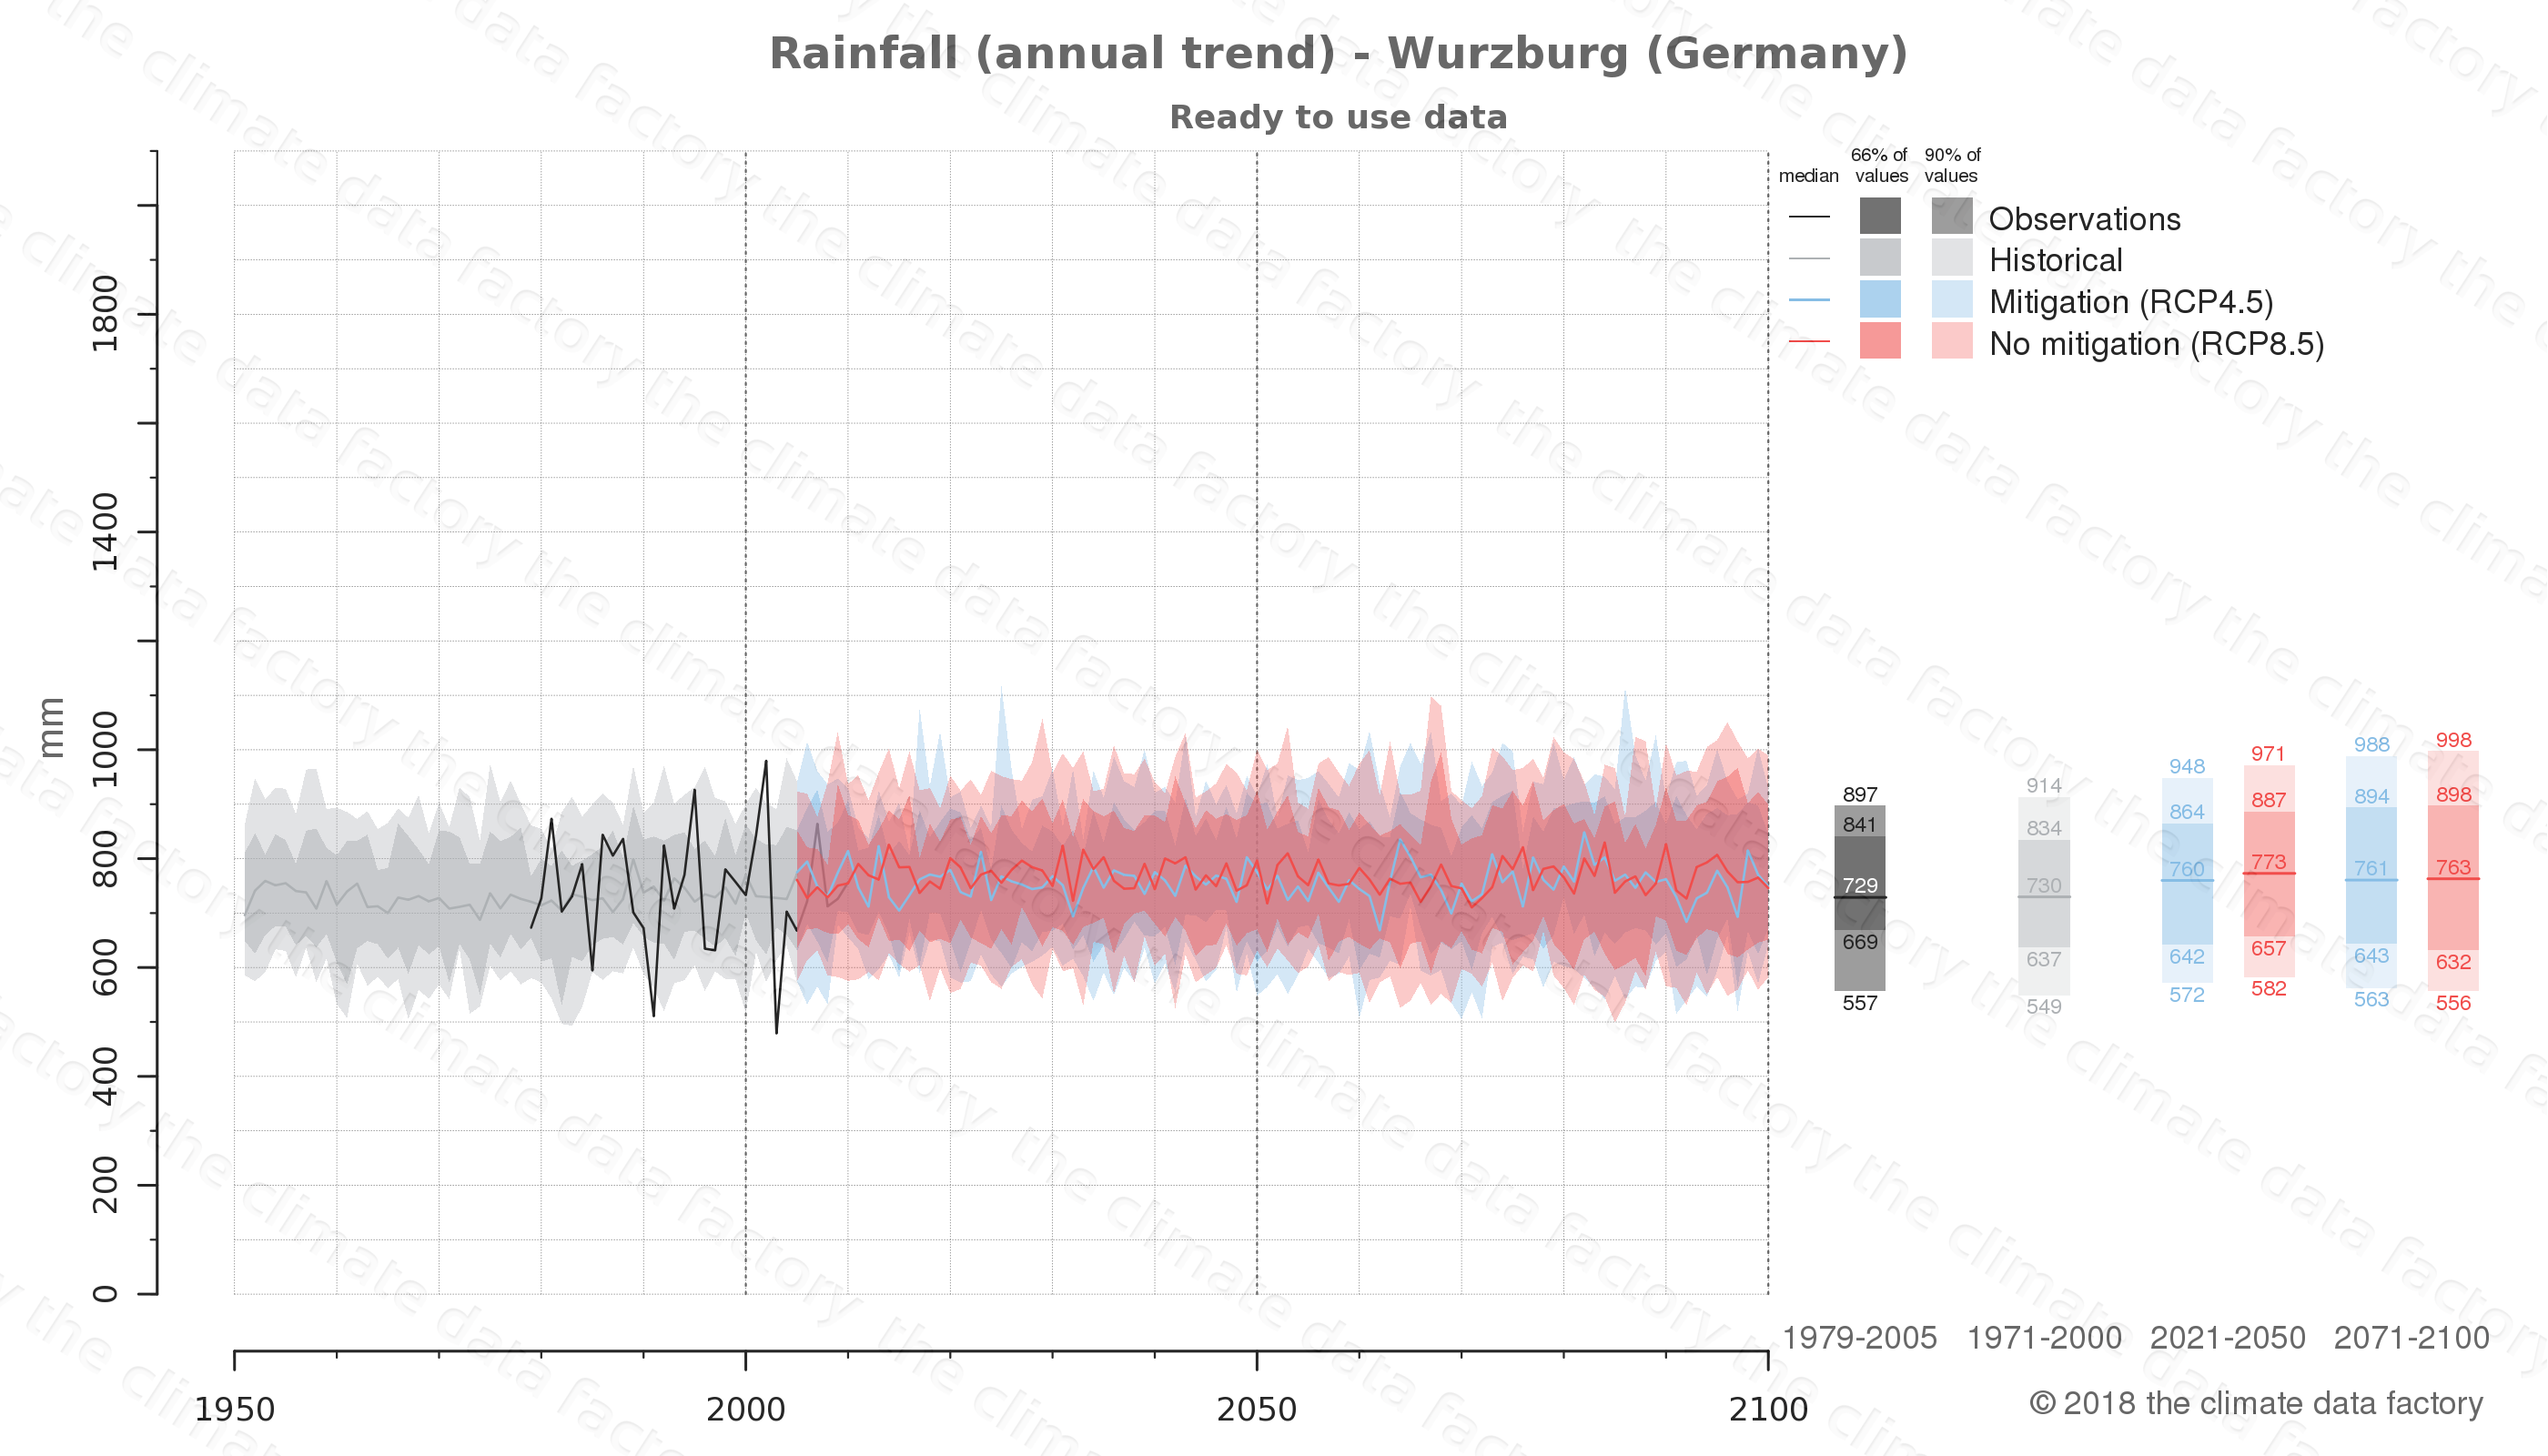 climate change data policy adaptation climate graph city data rainfall wurzburg germany